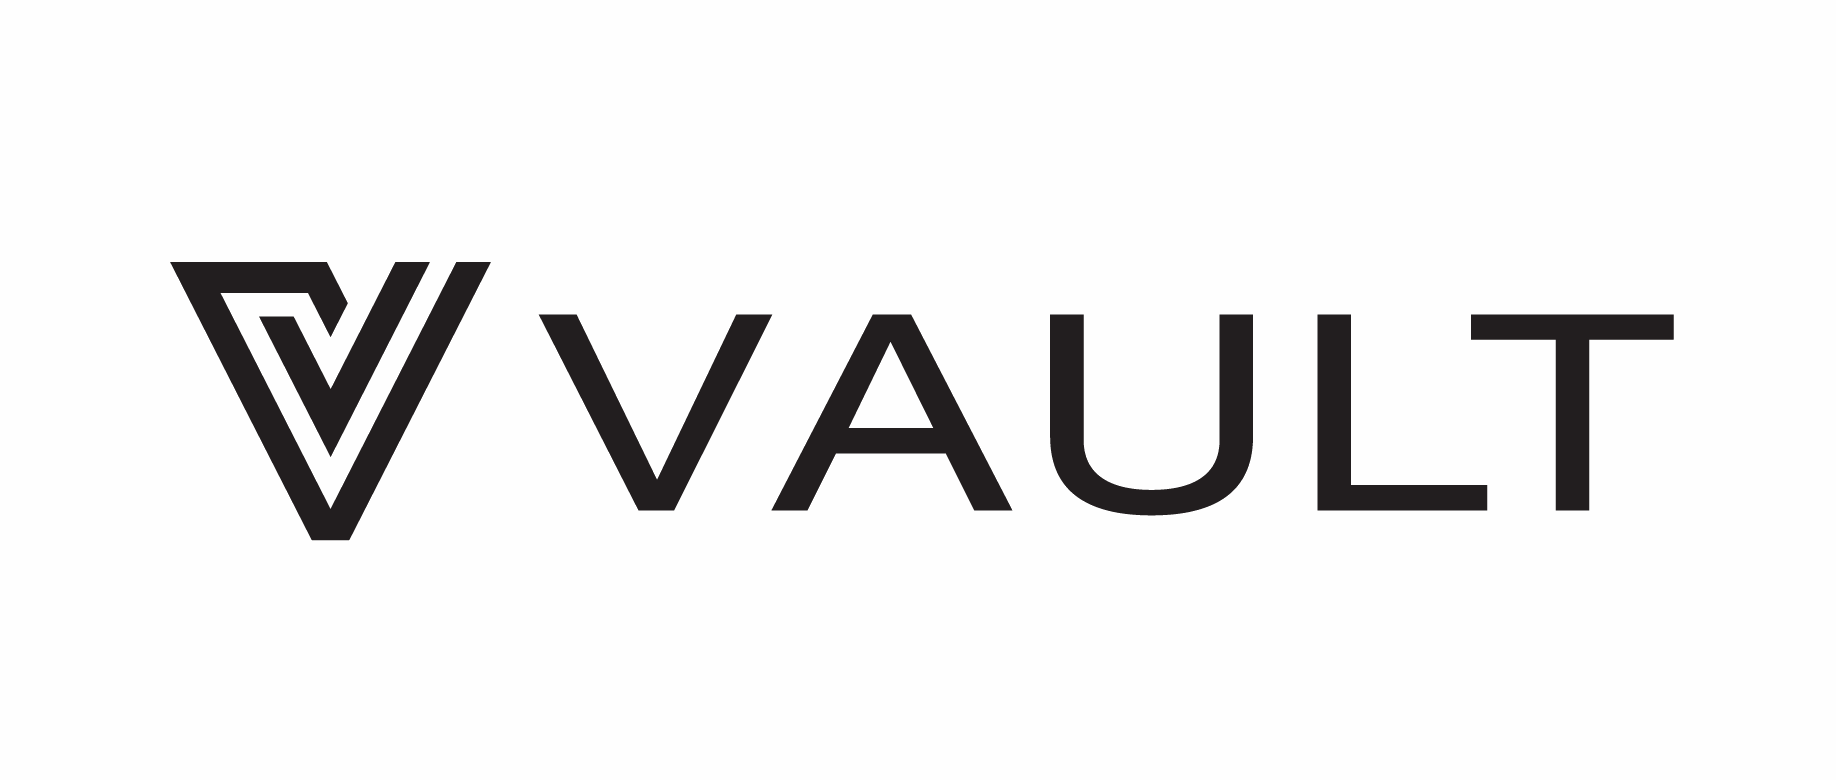 Vault logo black on white background